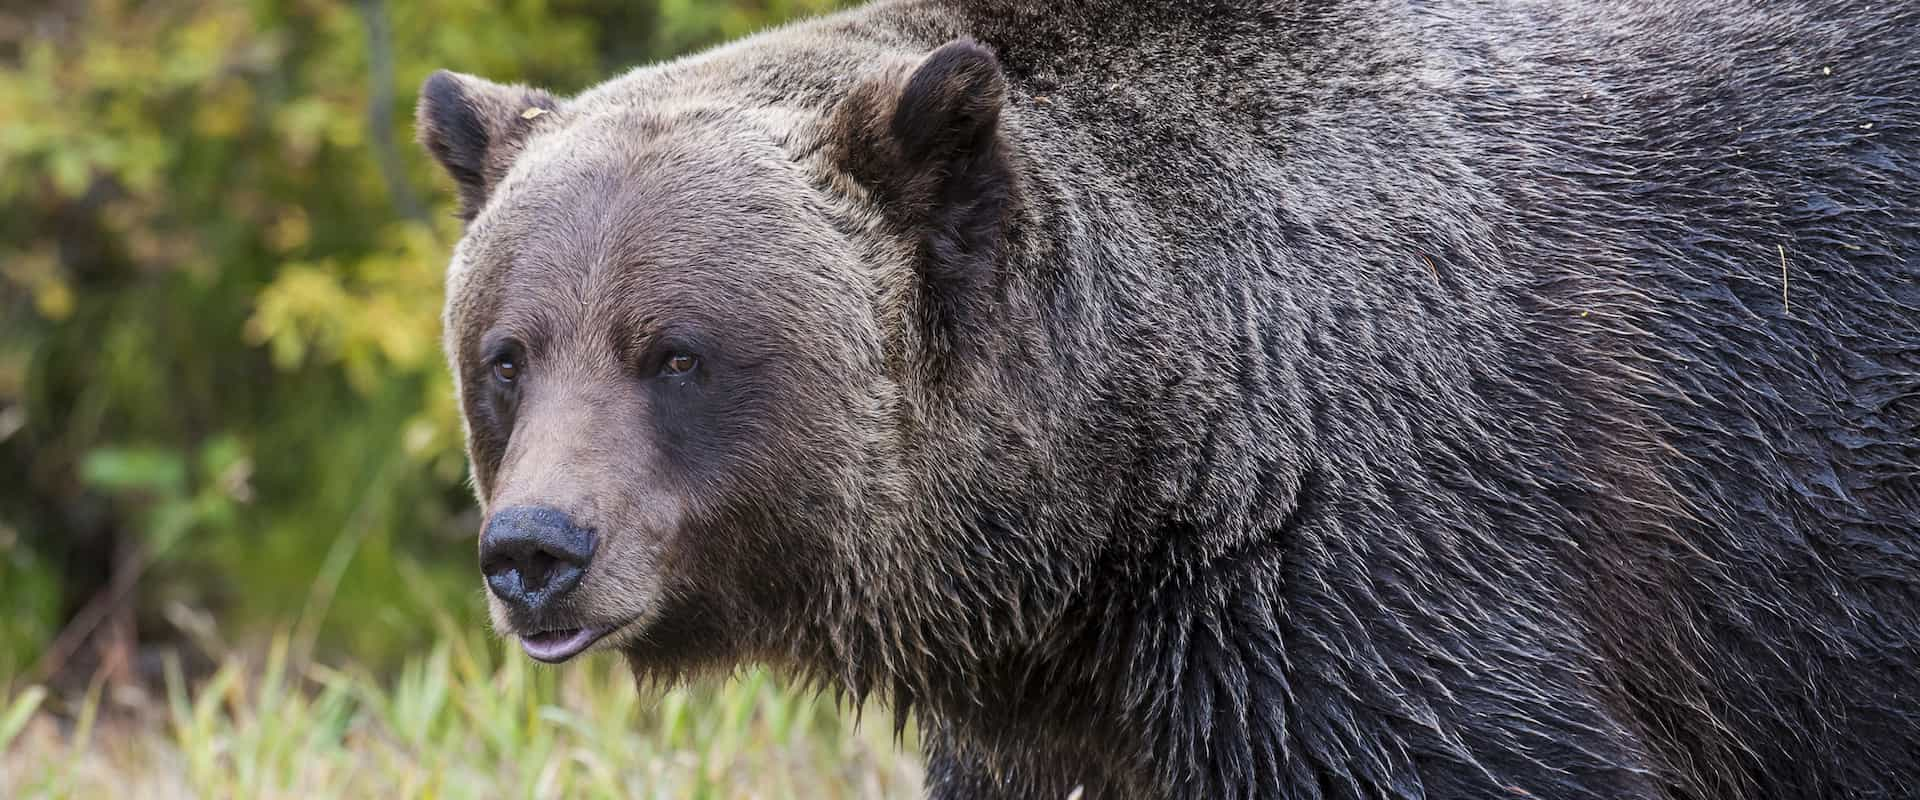 See Boo the grizzly bear right up close on the Discover Grizzly Bears Tour with Discover Banff Tours in the Canadian Rockies